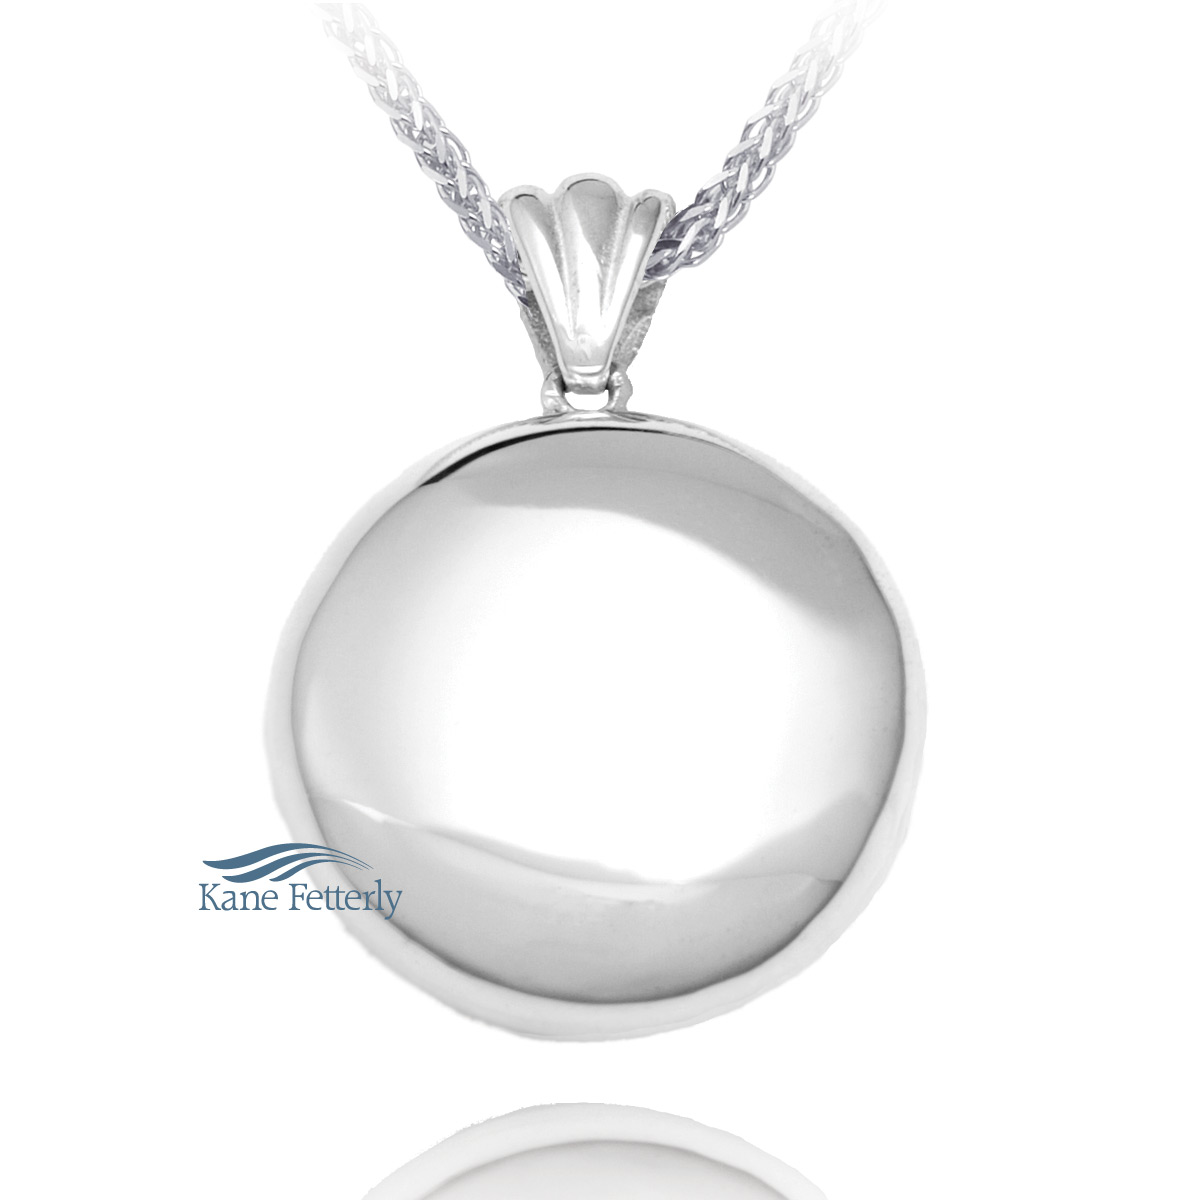 J0148 Round pendant in sterling silver